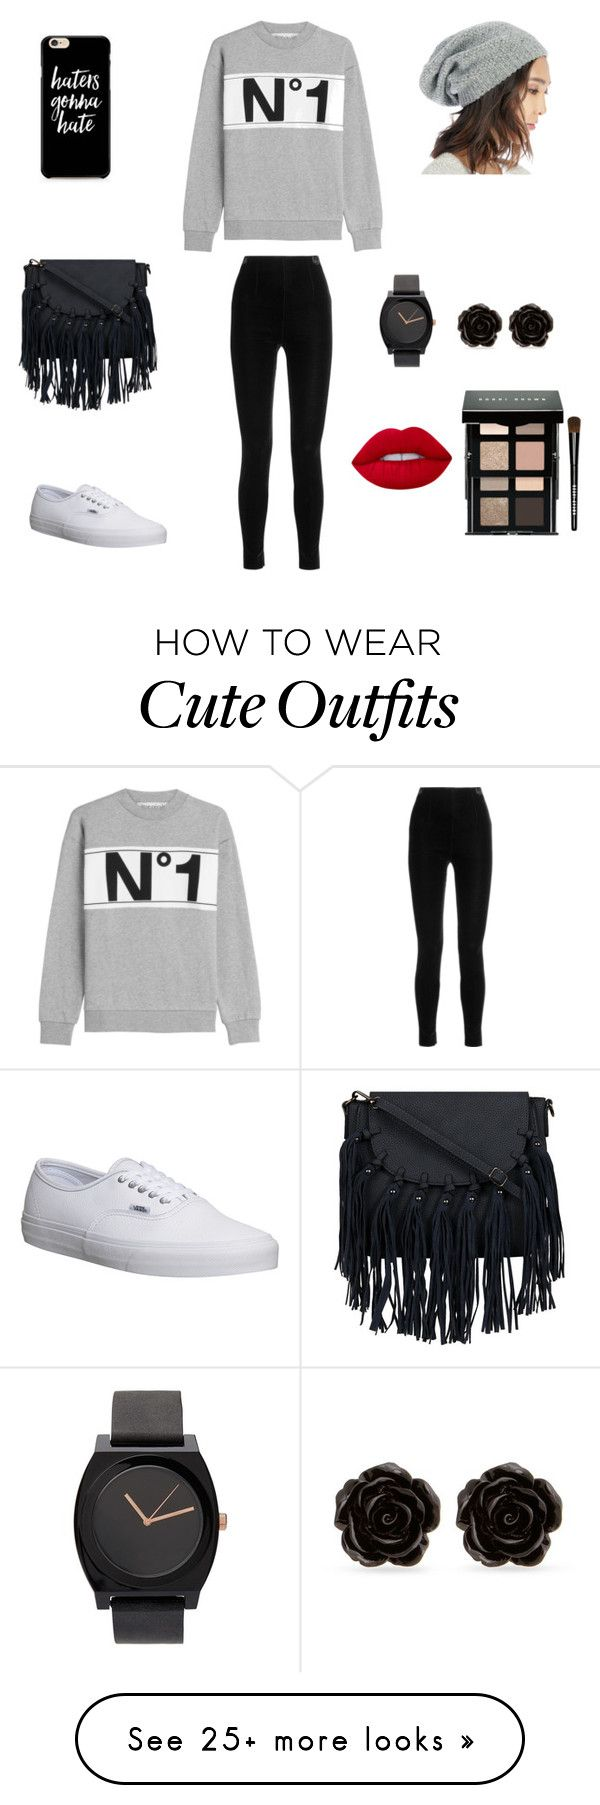 """Cute outfit"" by stuff4m on Polyvore featuring Être Cécile, Vans, Balmain, Sole Society, Erica Lyons, Lime Crime and Bobbi Brown Cosmetics"